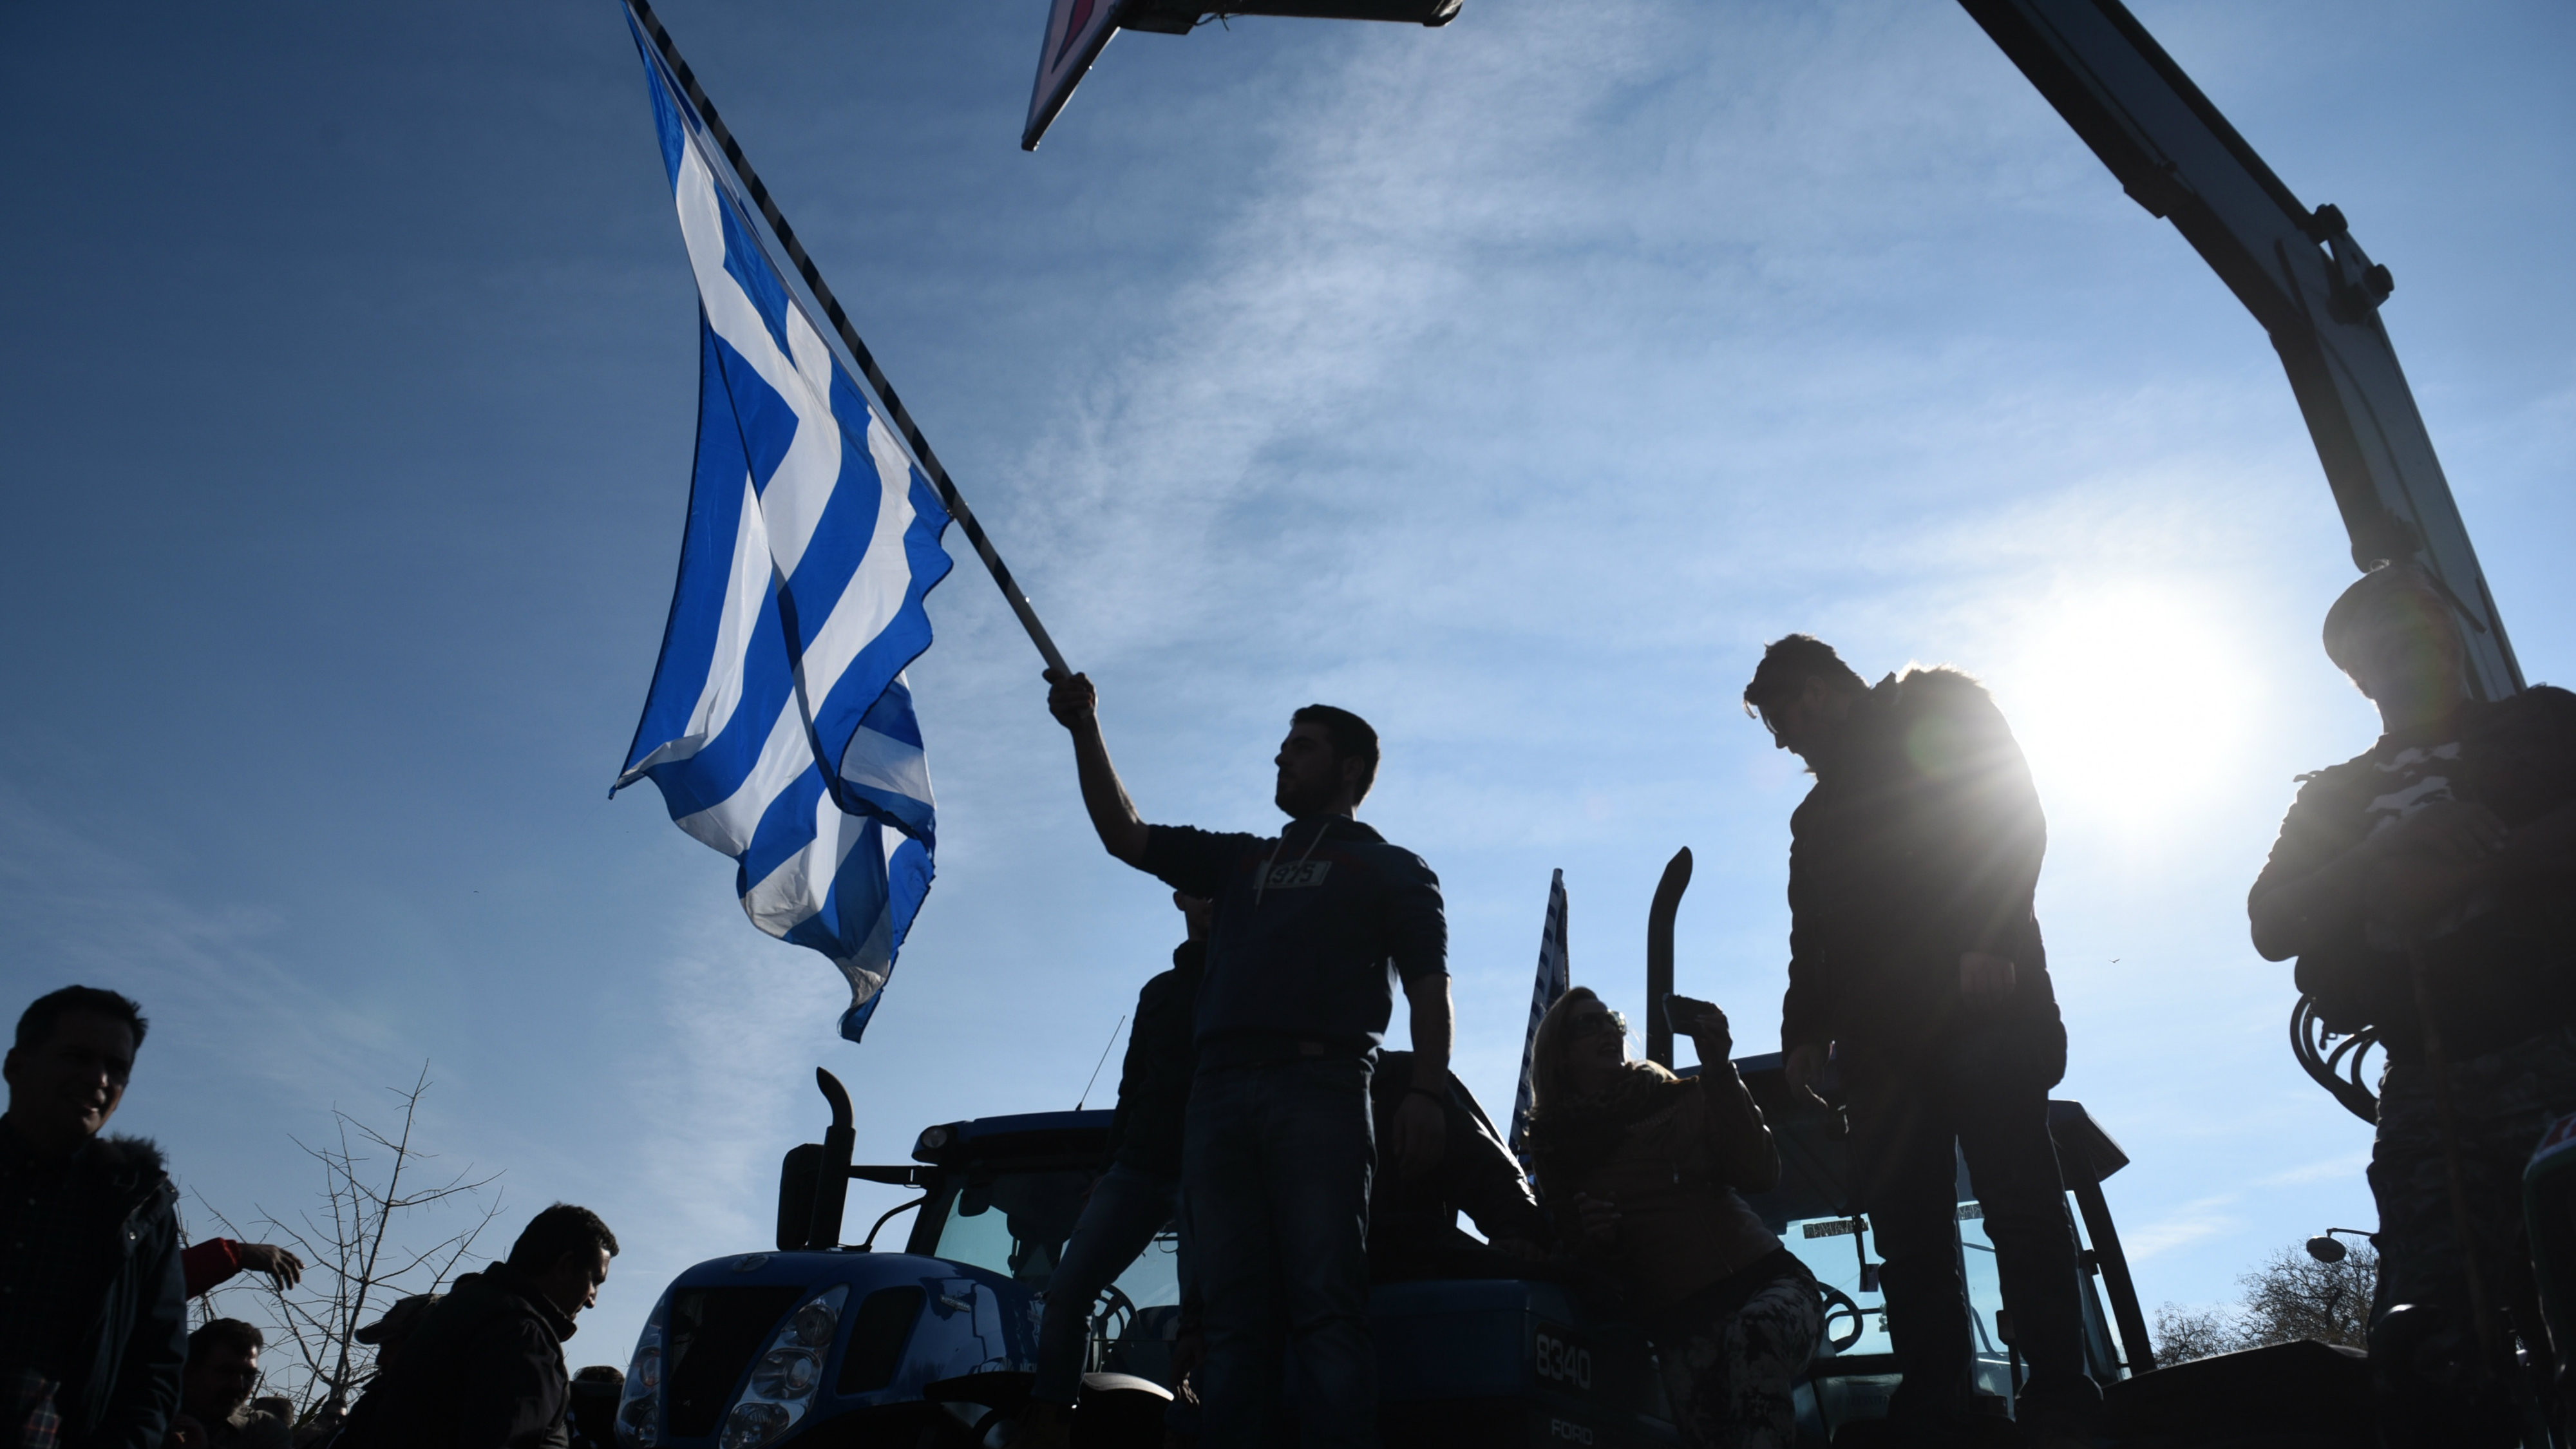 Greeks protest against reforms in bailout programs